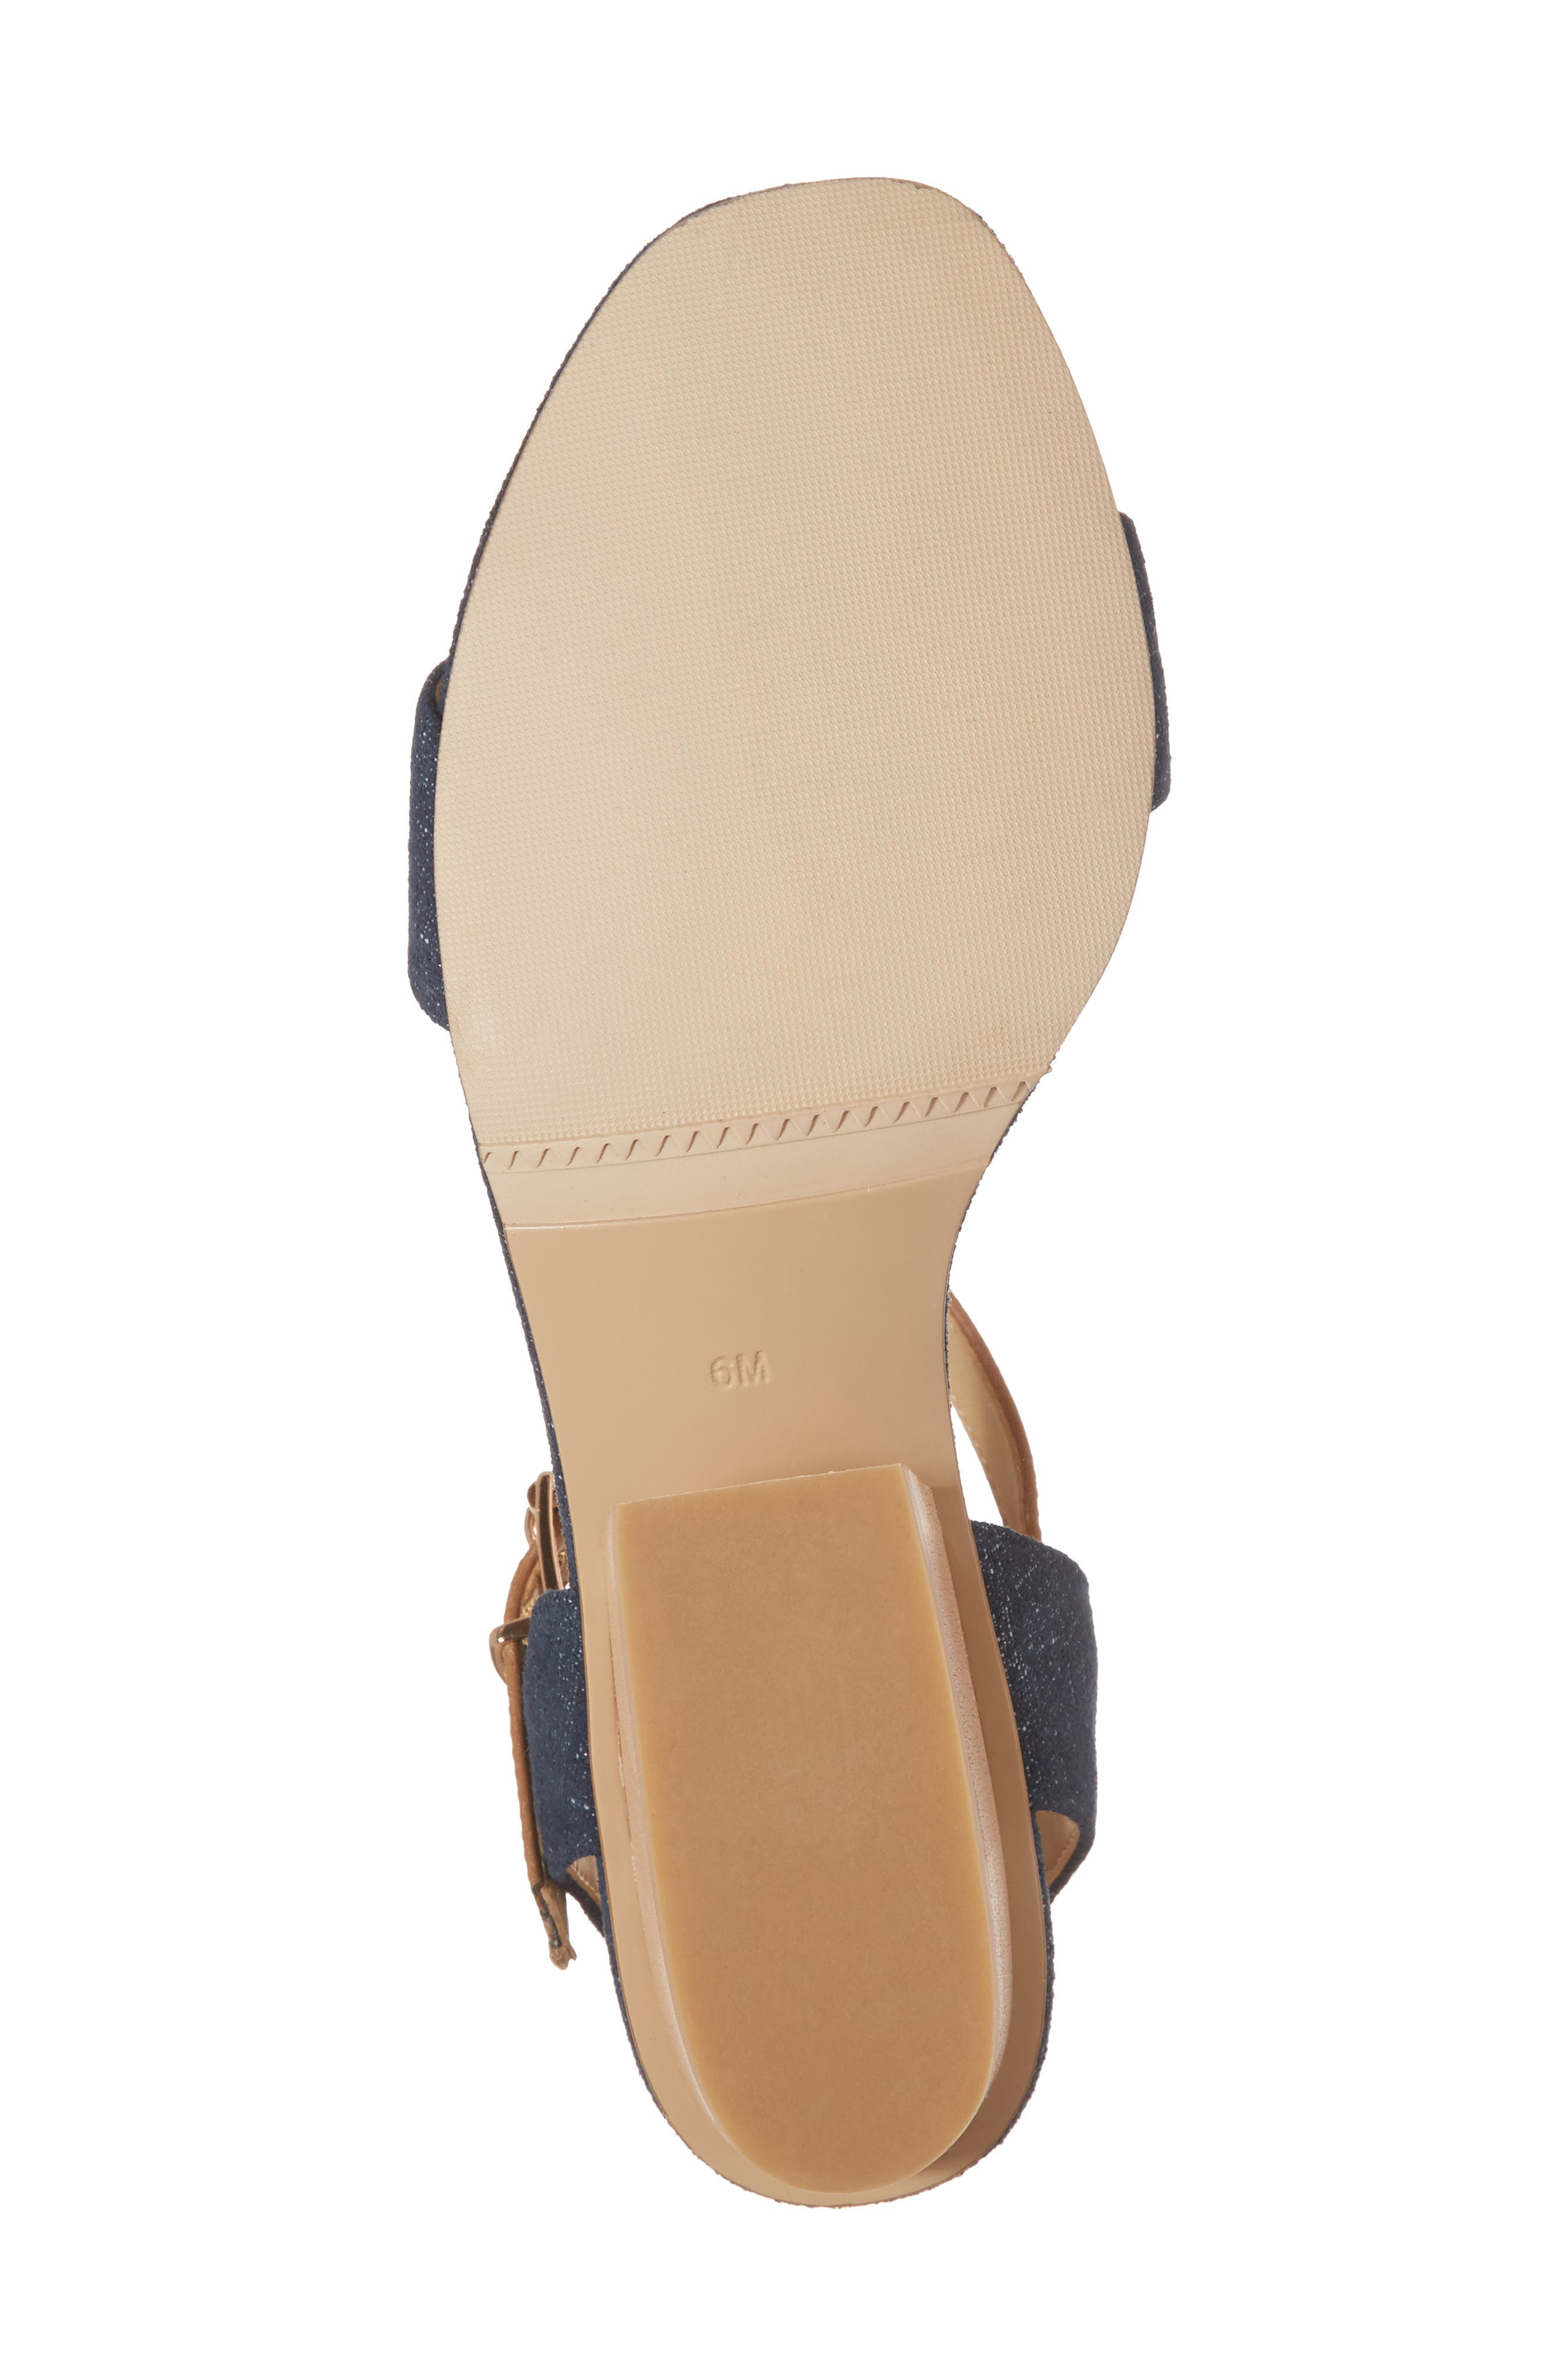 Chaddy Sandal,                             Alternate thumbnail 6, color,                             Jeans Printed Suede